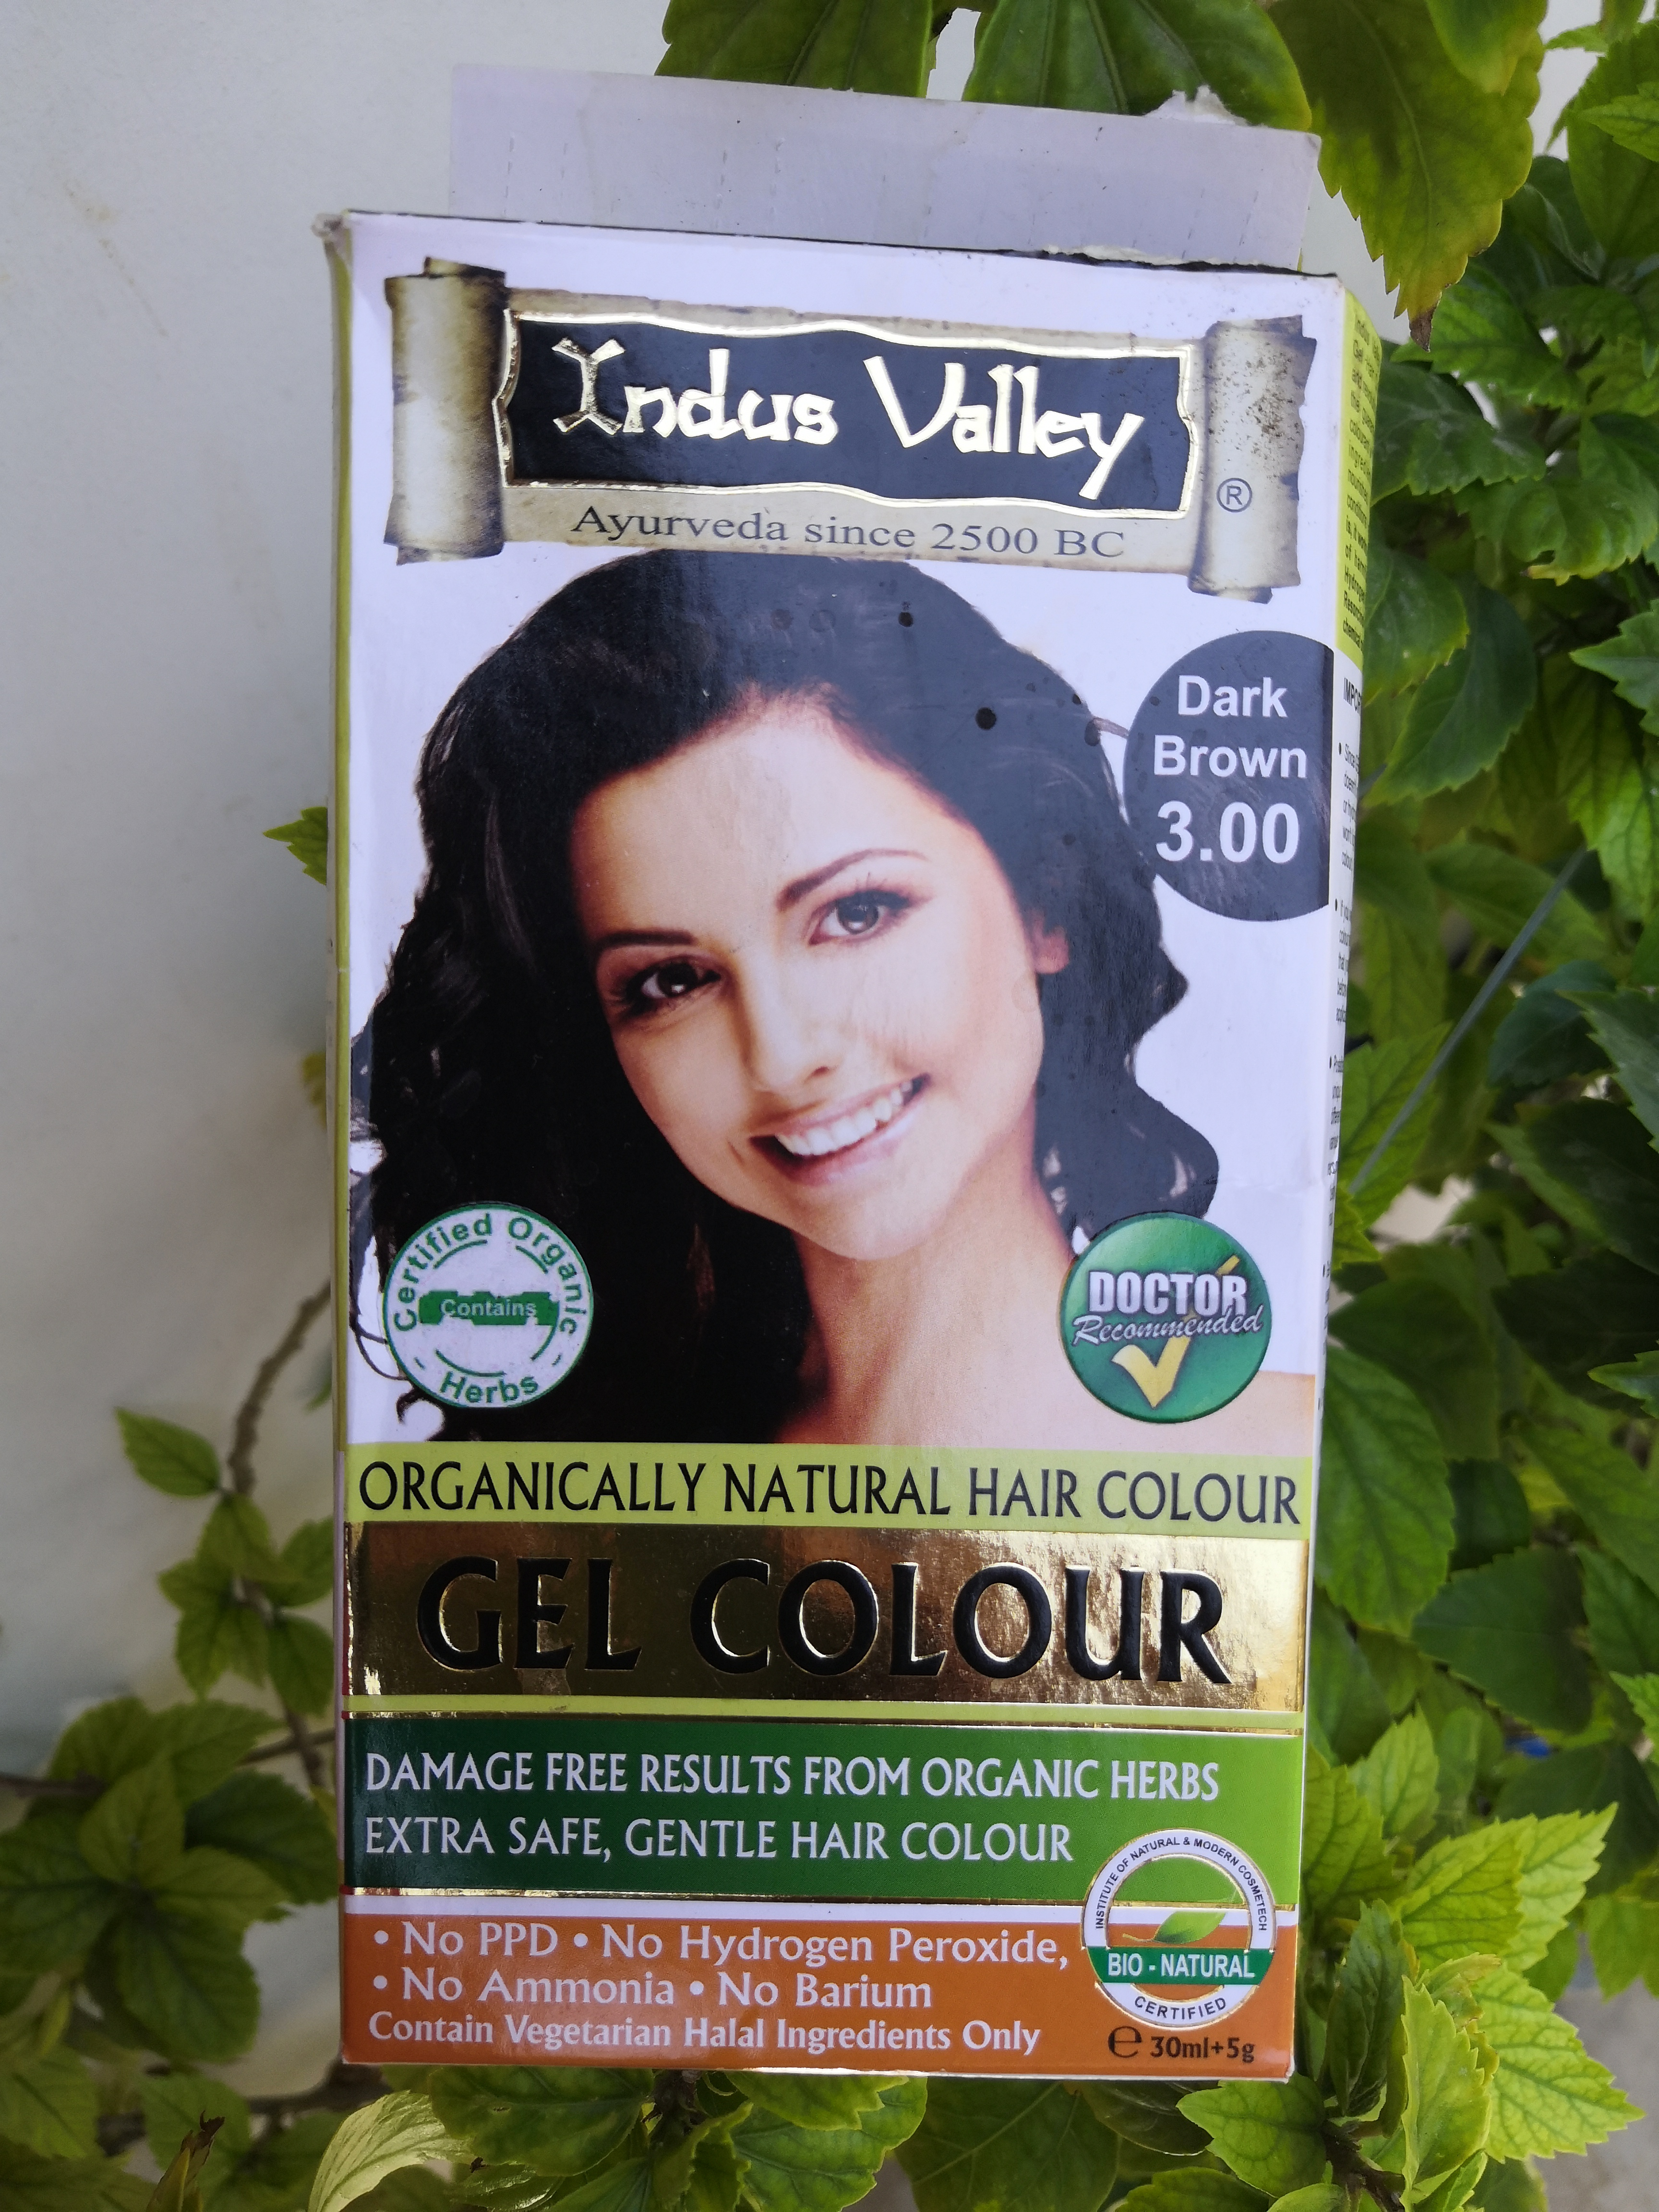 Indus Valley Organically Natural Gel Hair Color Dark Brown-Wonderful organic hair colour-By stylefitjanu